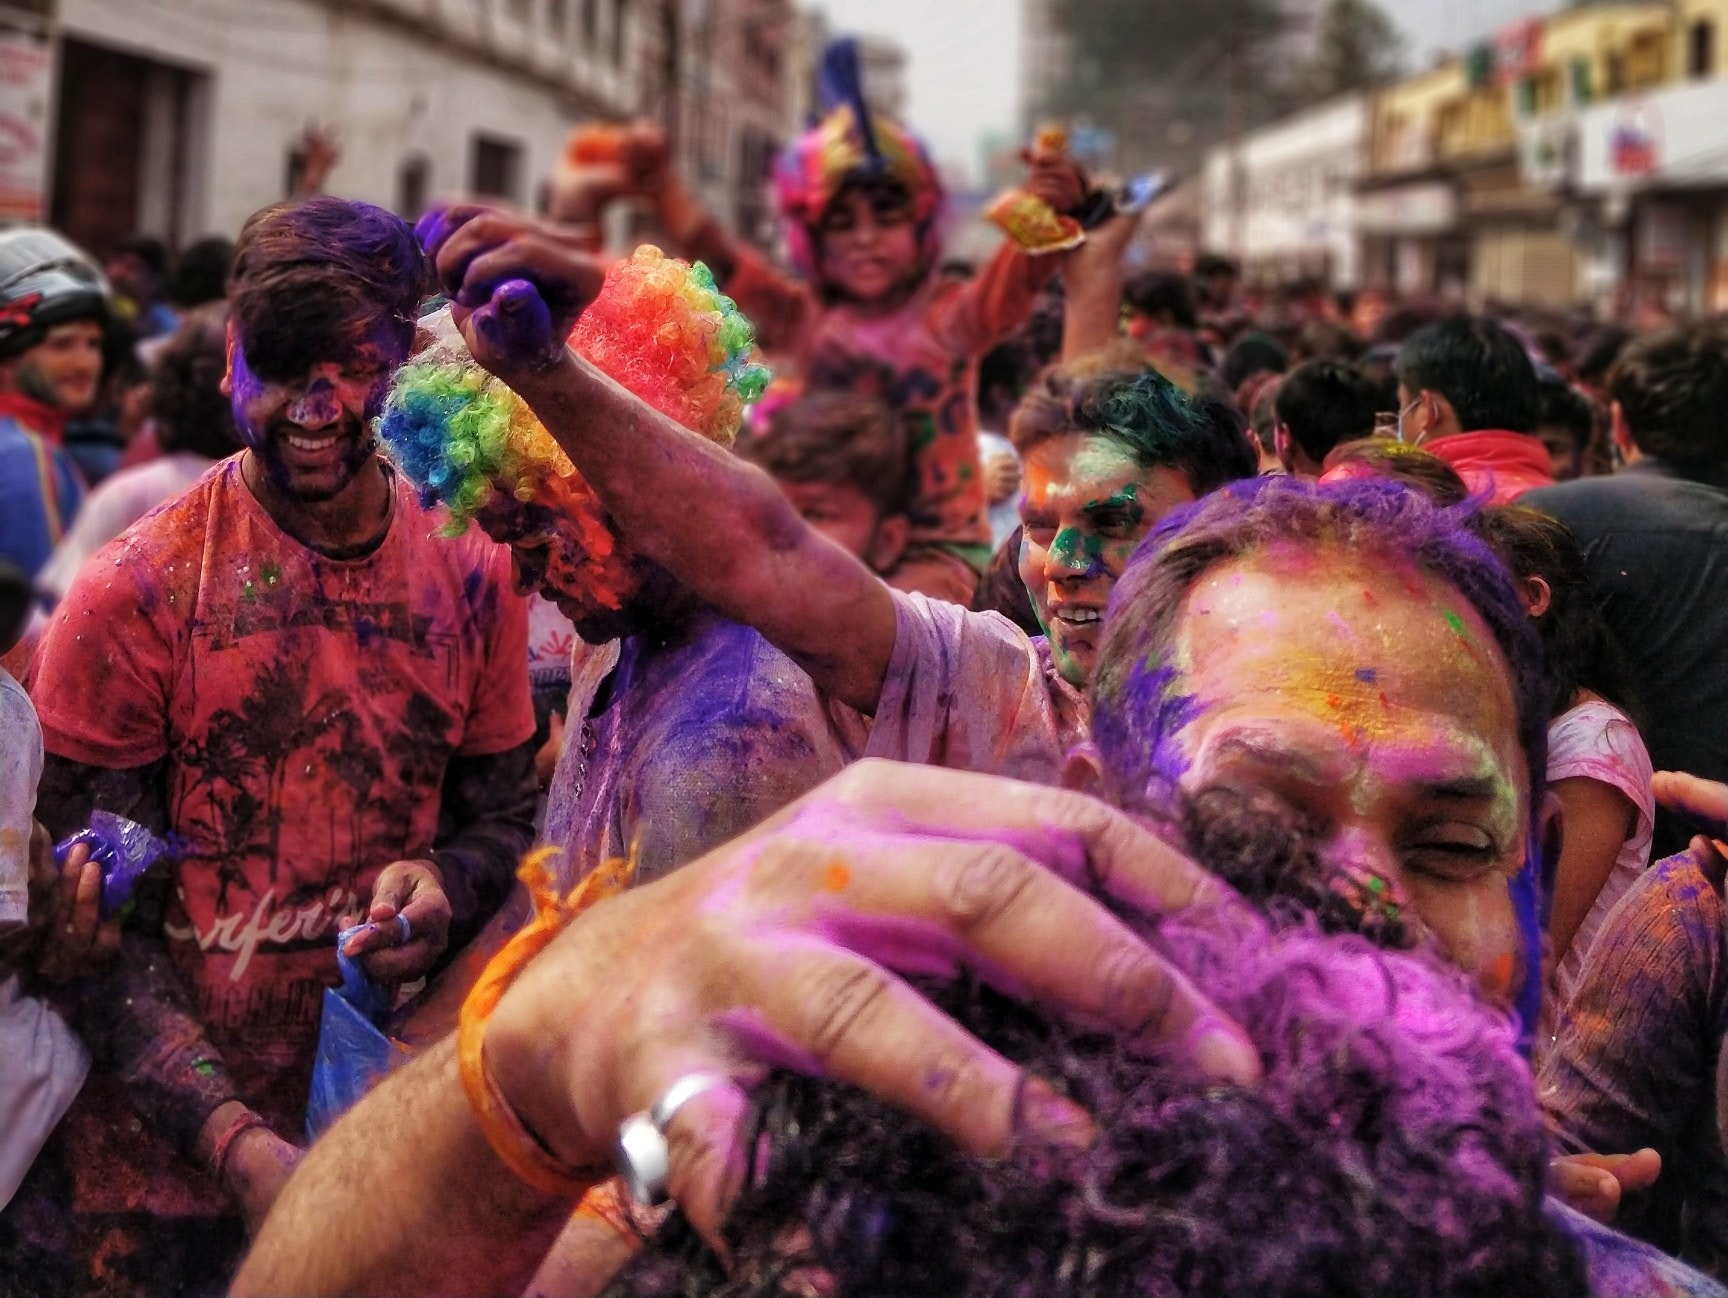 Is India safe for white tourists?